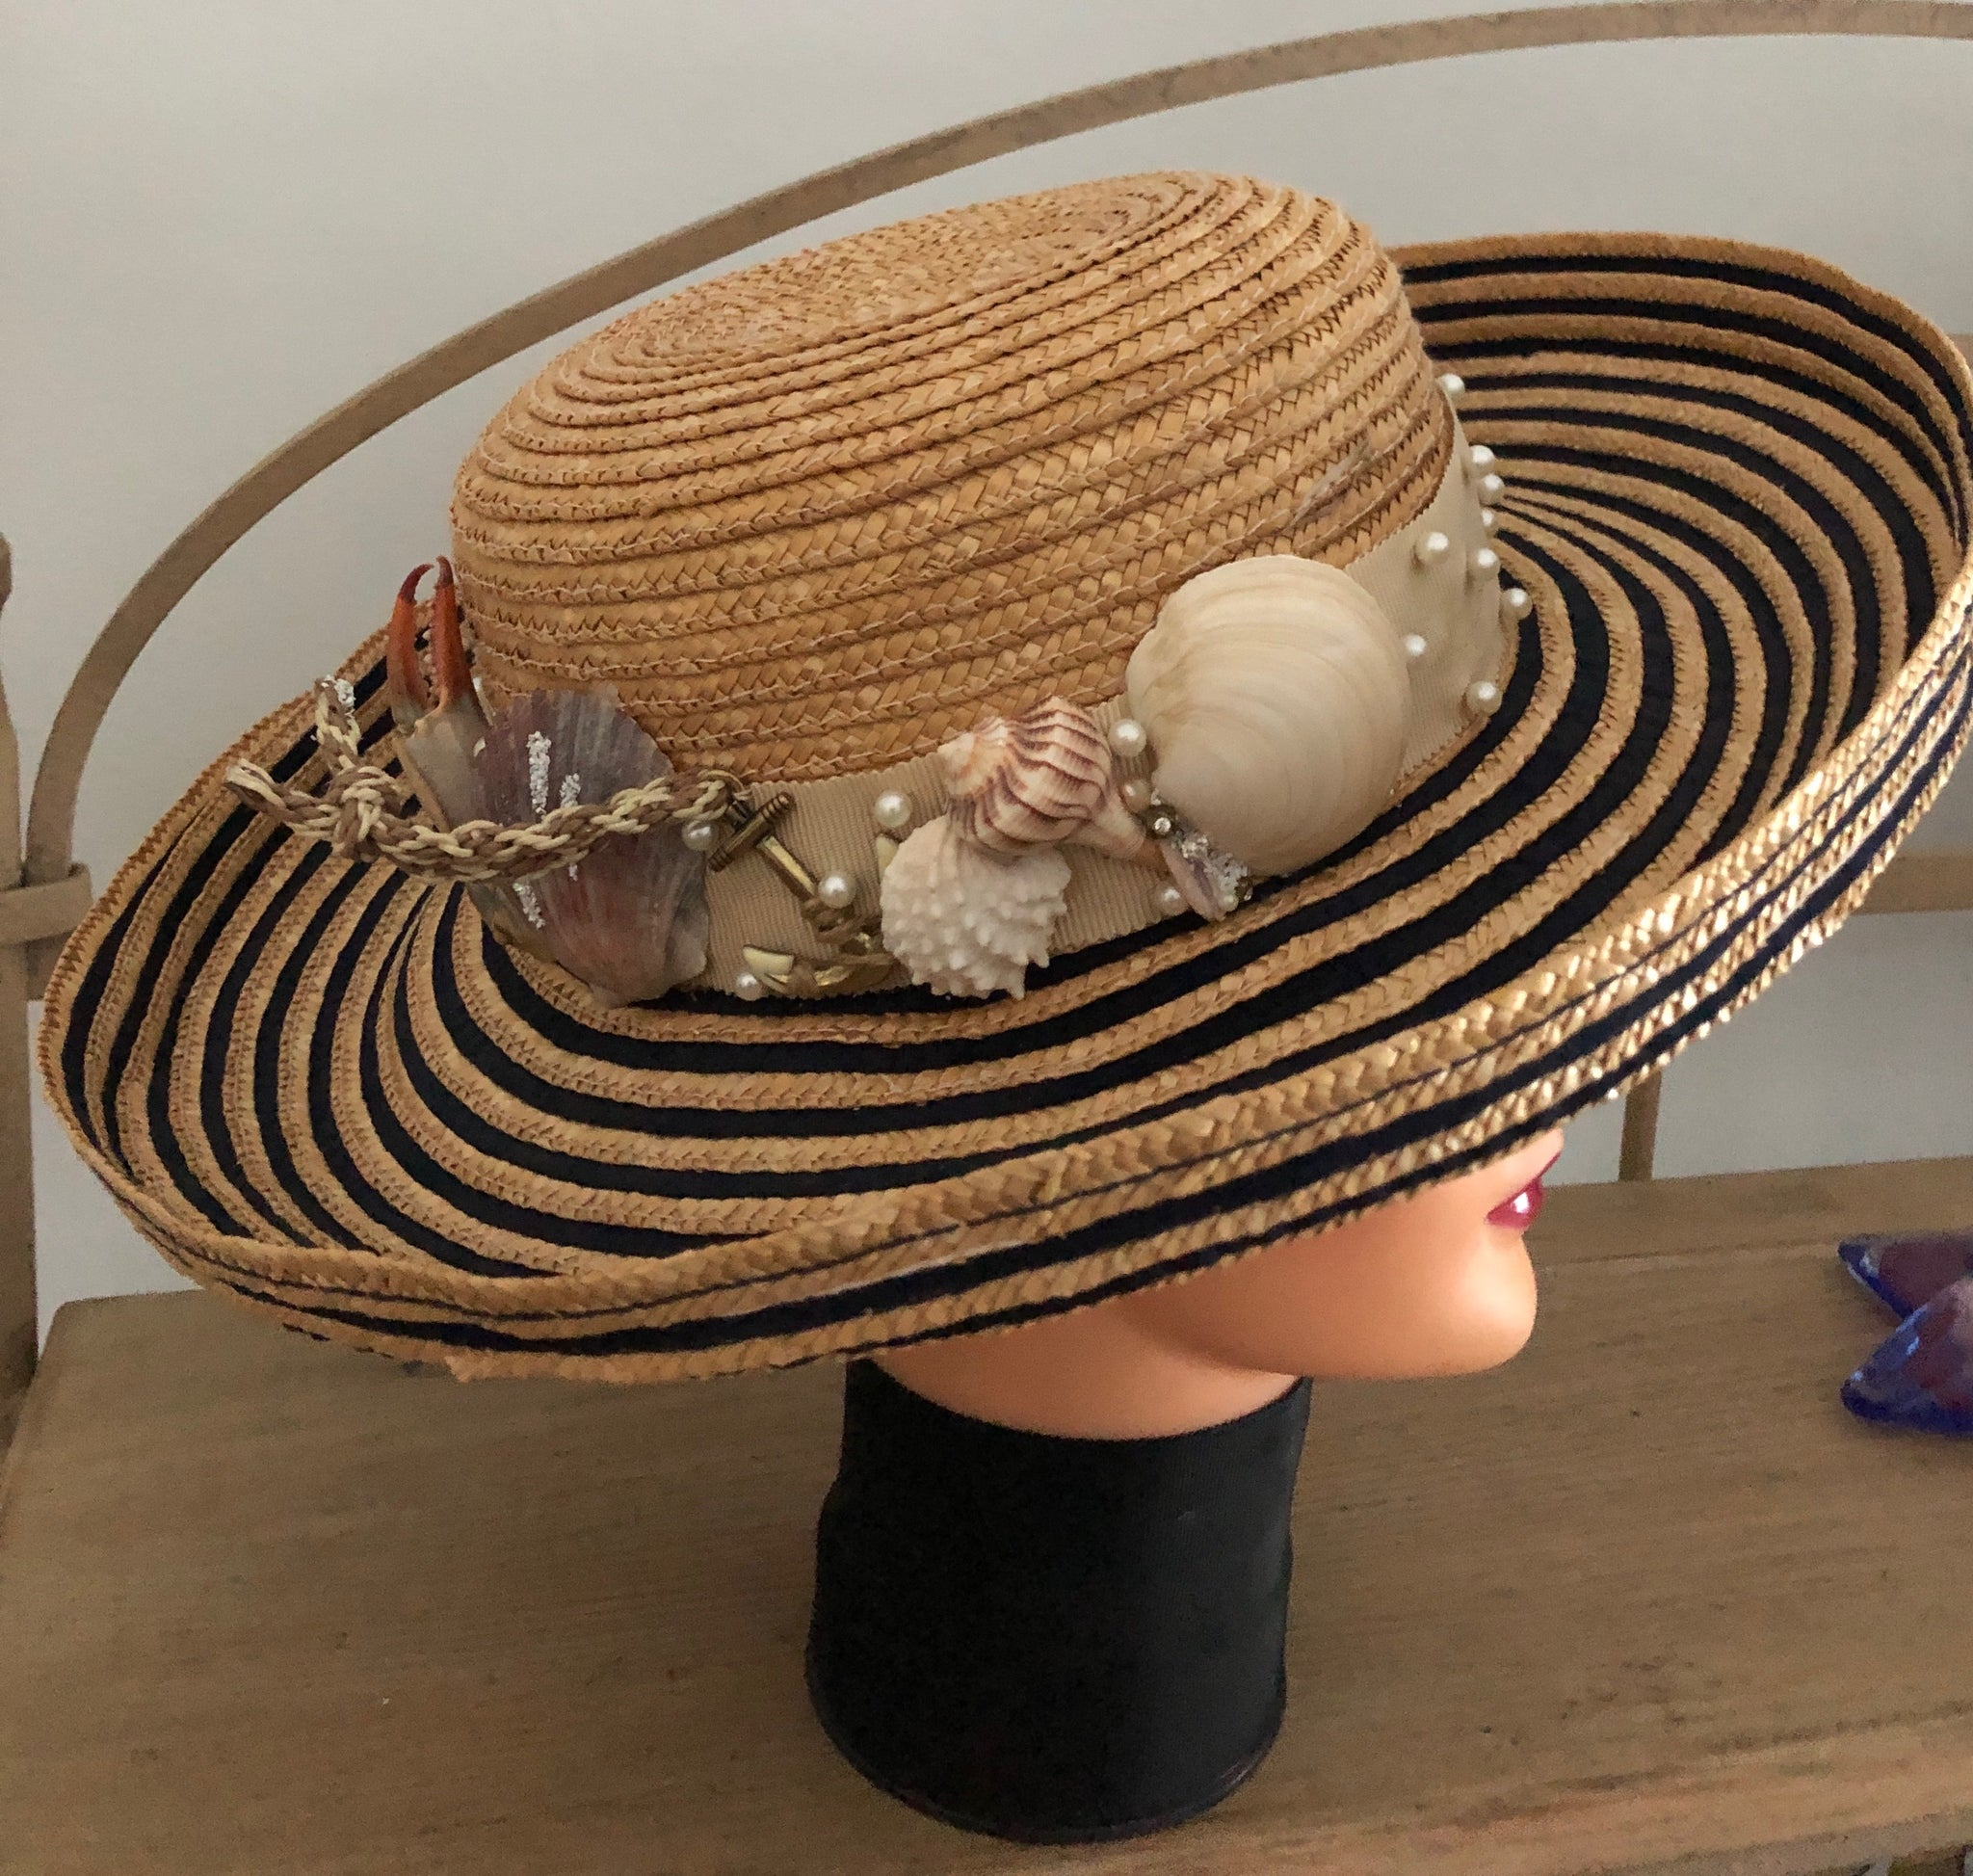 """Tybee Collection"" Straw Hat by Gena Fausel"